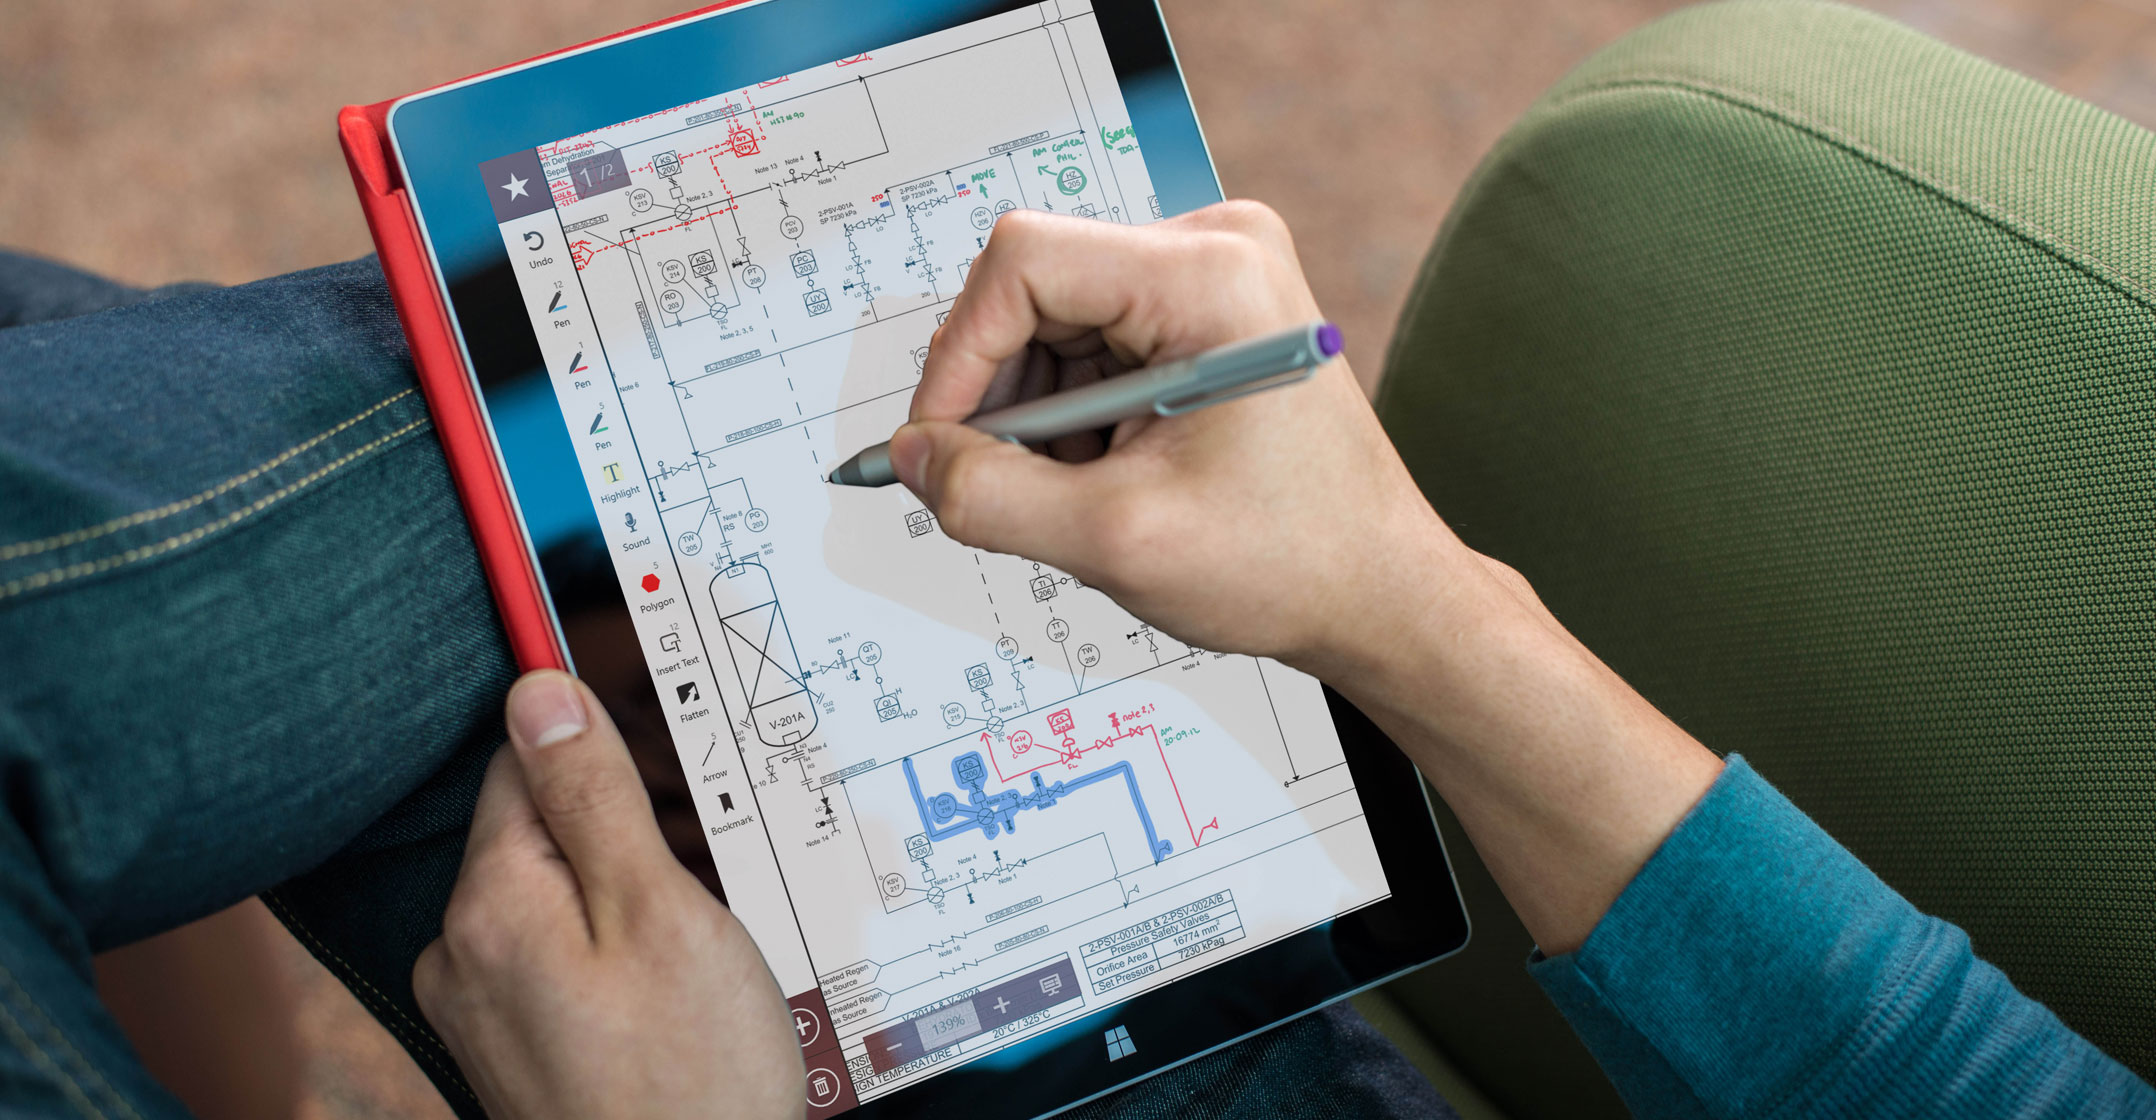 Microsoft plans a new line of tablets to take on Apple's iPad